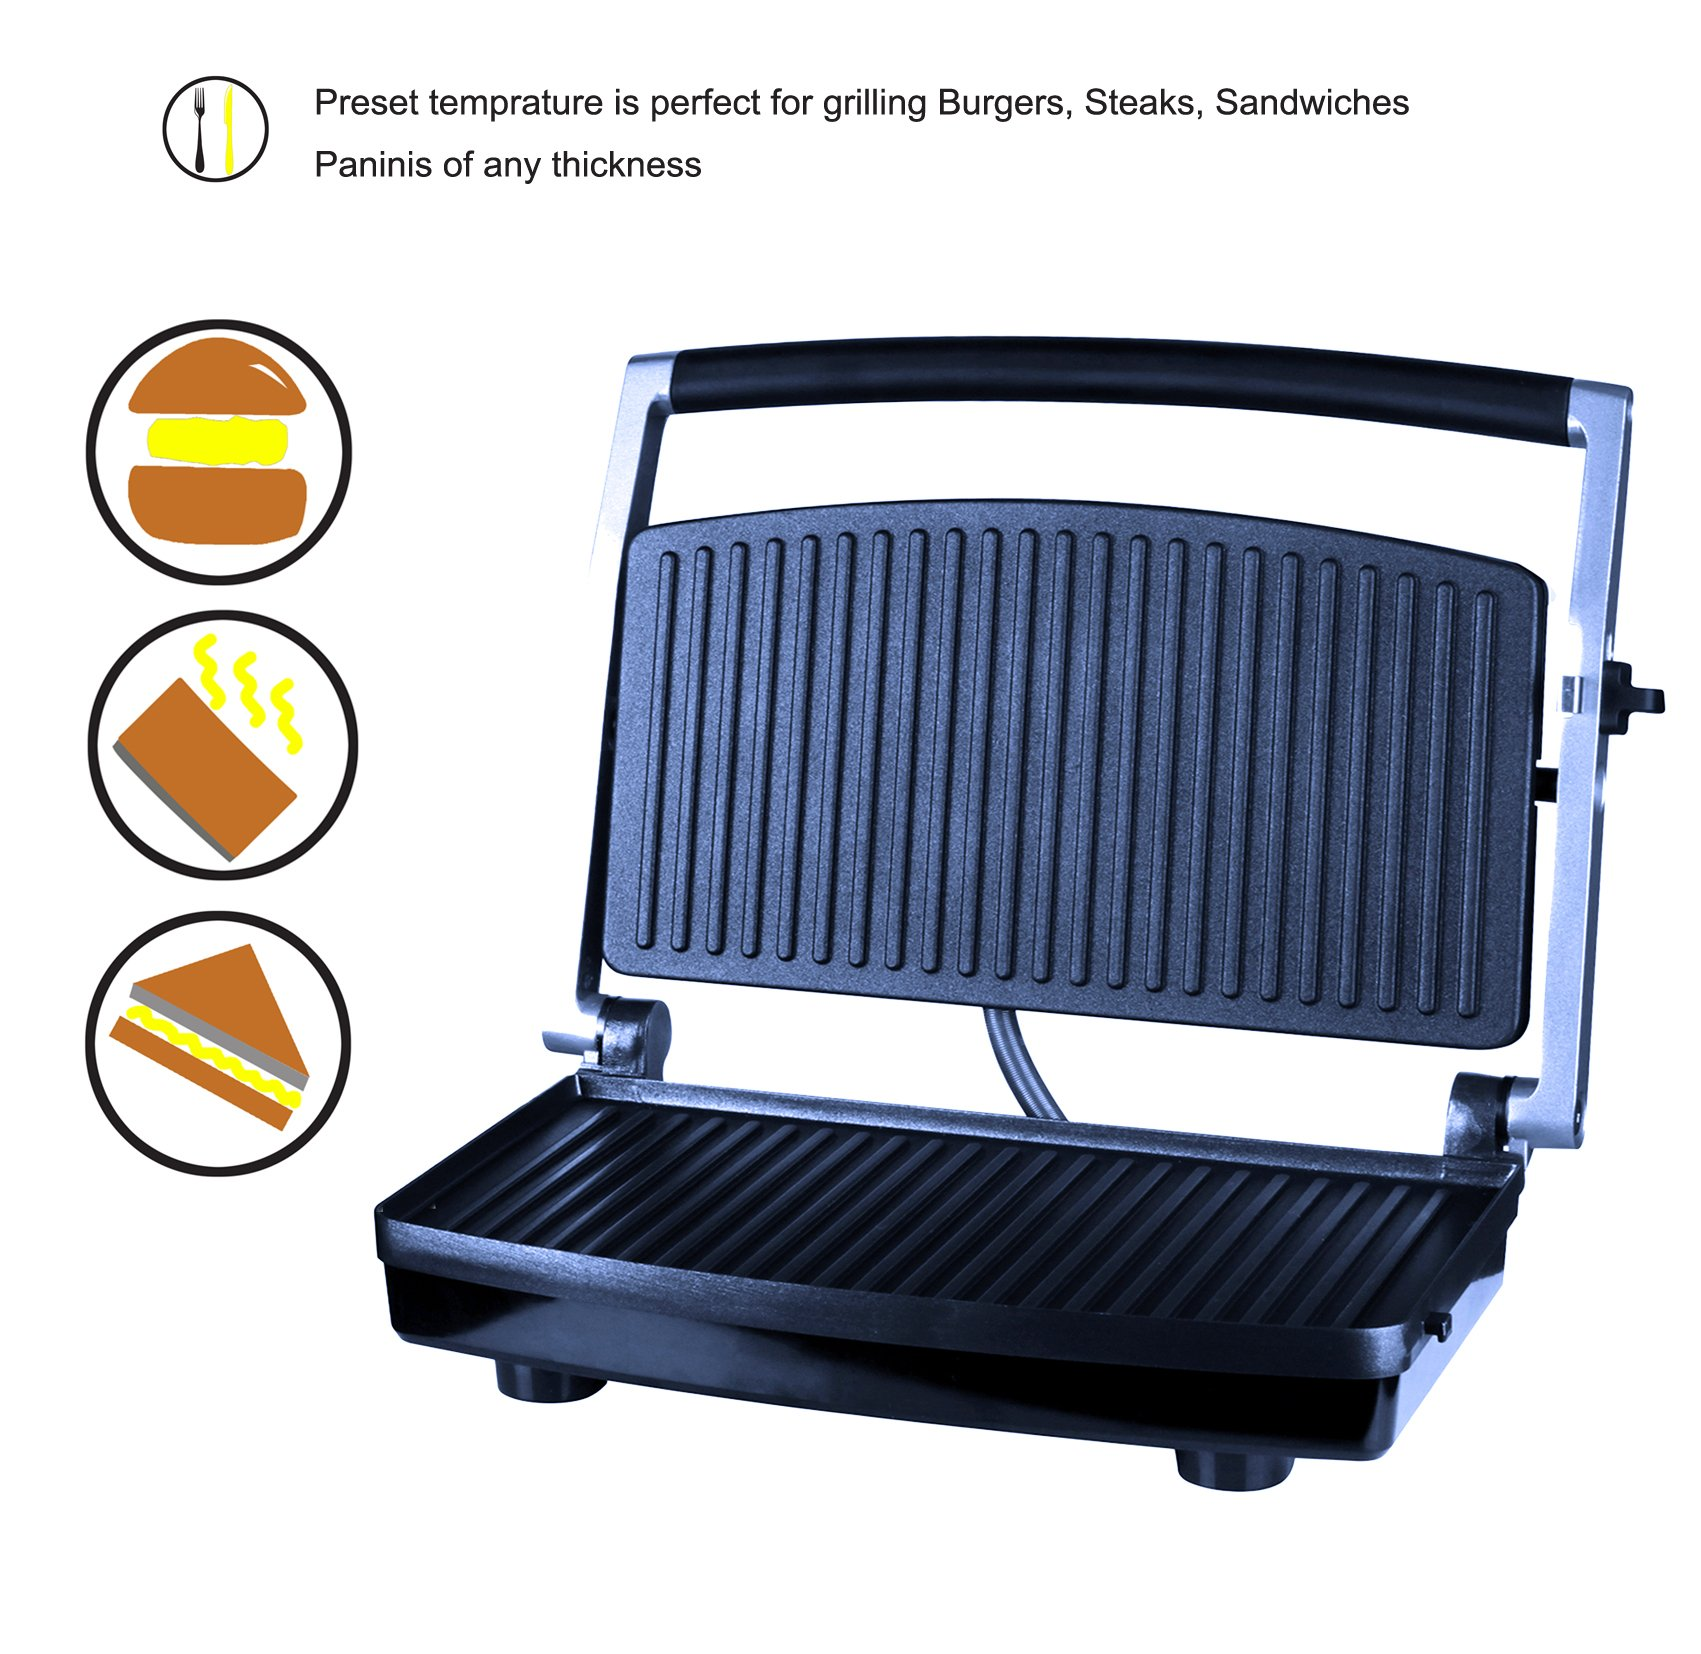 ZZ SM303 Burger Grill, Sandwich Maker, Panini Press, Steaks Griller or Grill, Silver by ZZ (Image #2)